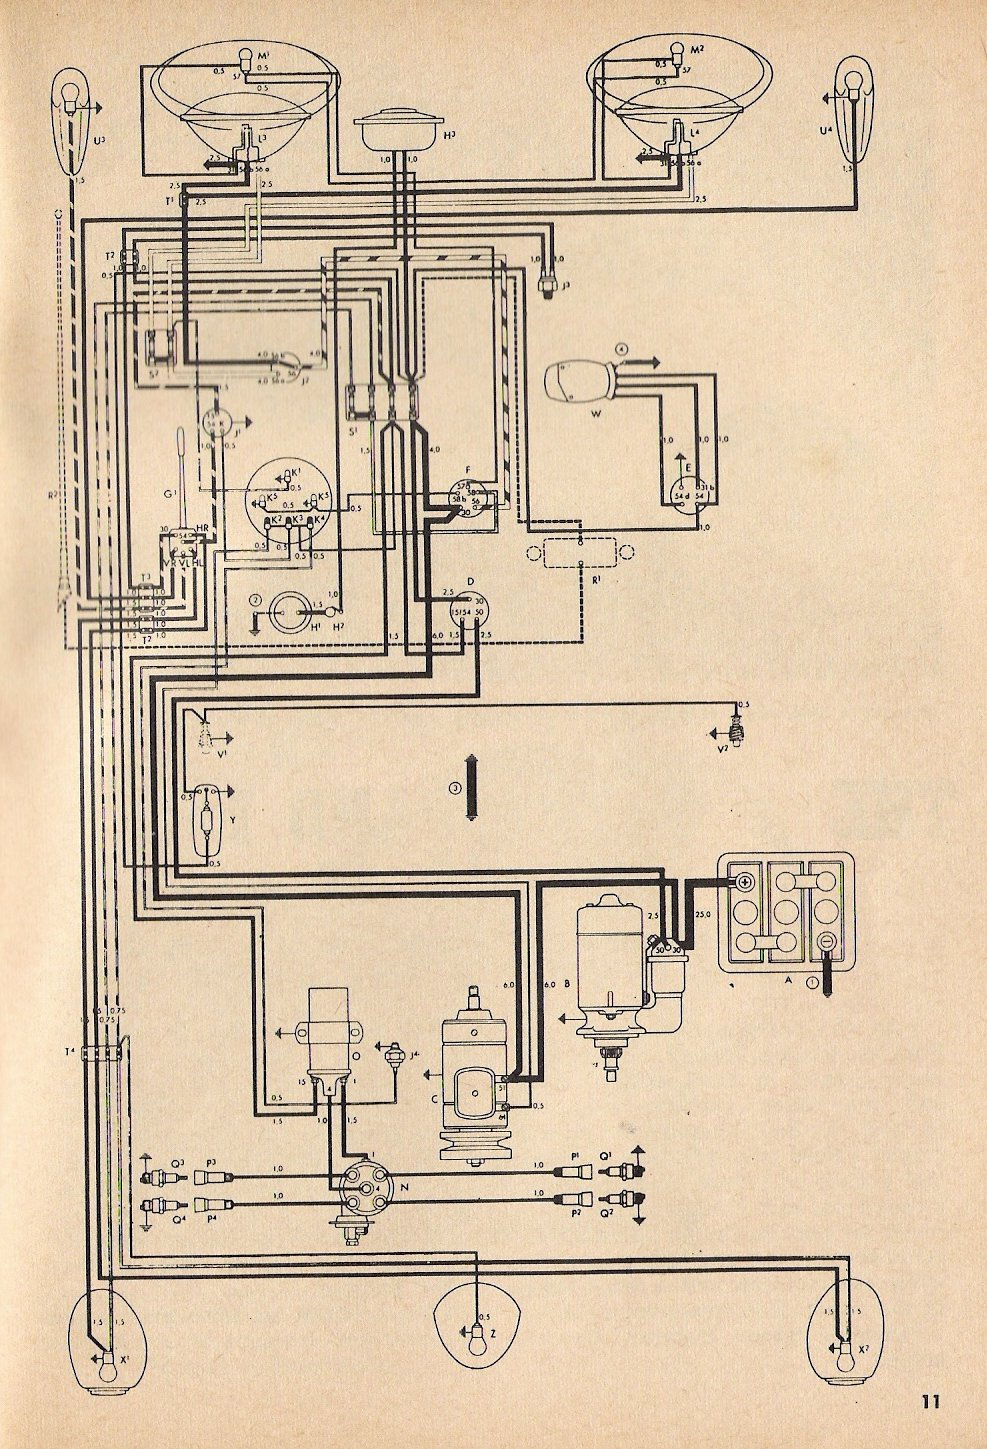 Type 1 Wiring Diagrams 1968 Camaro Turn Signal Diagram